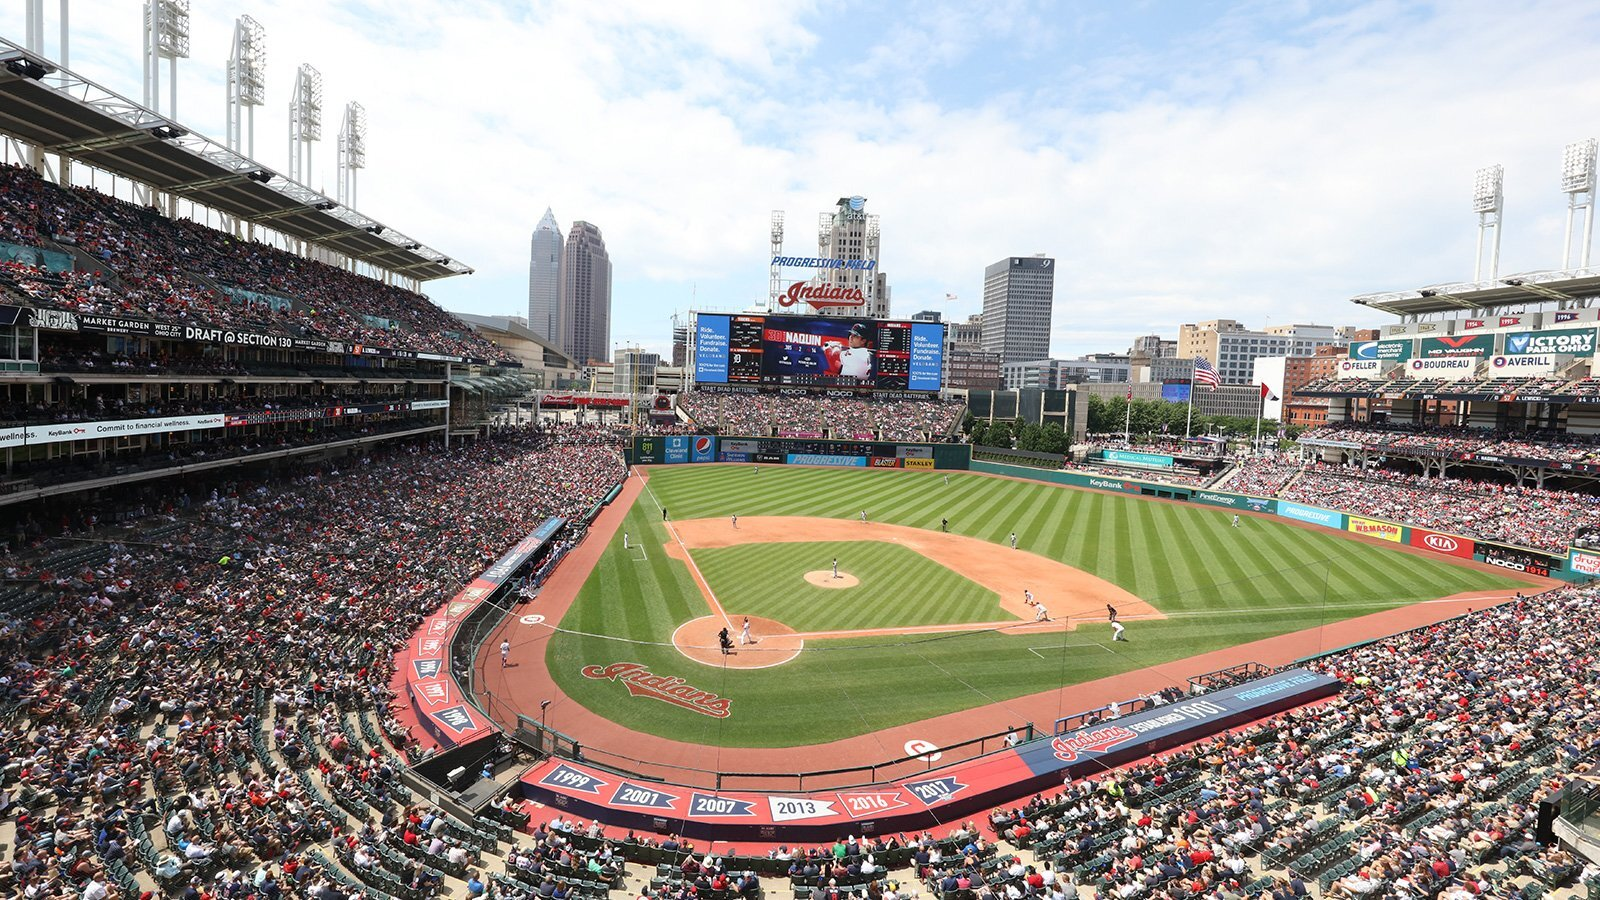 A baseball stadium filled with people